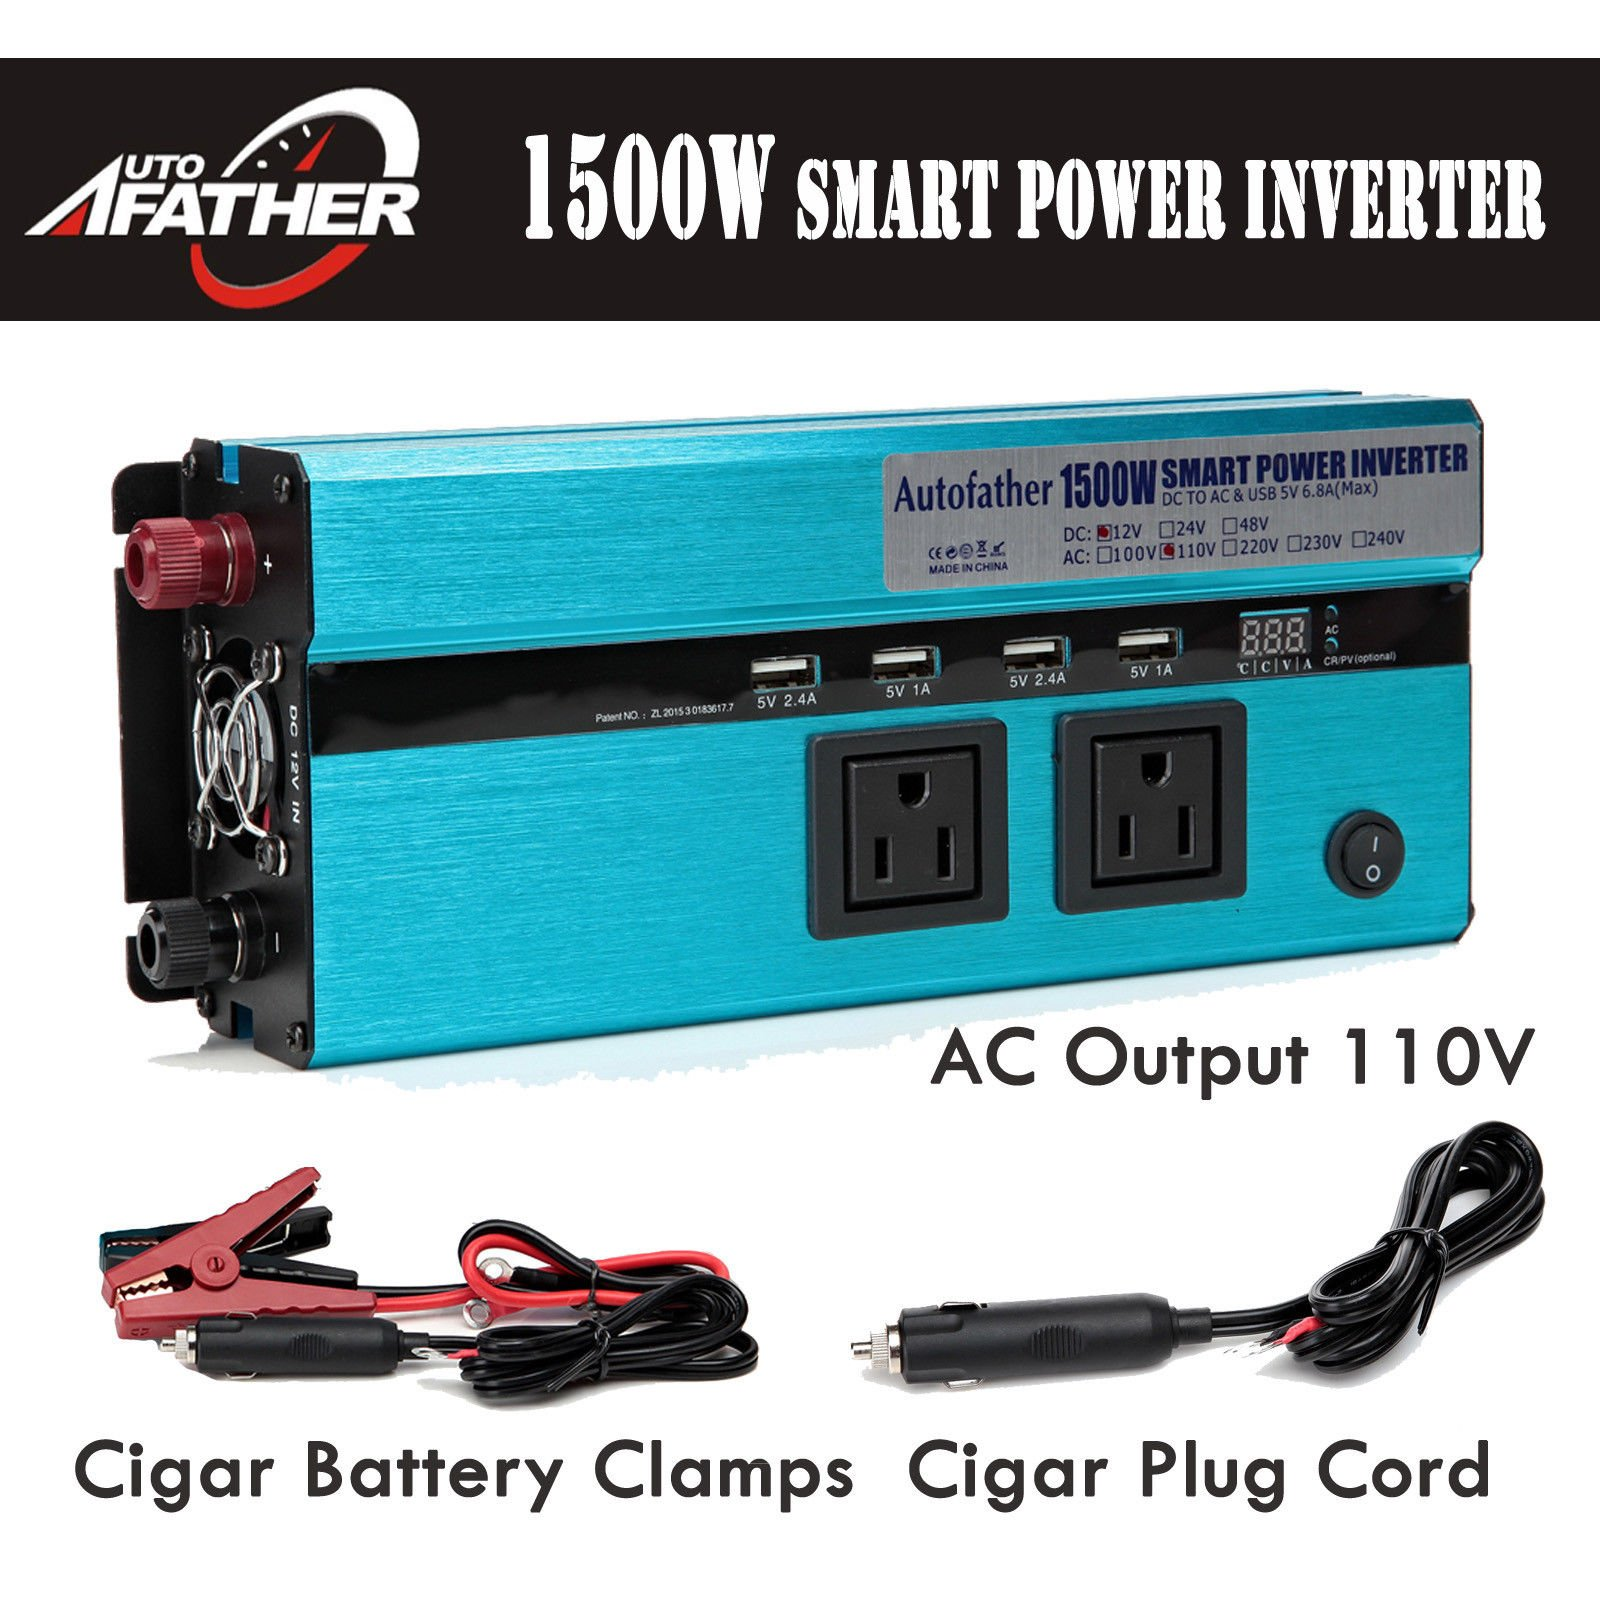 2018 Newest Design Car Power Inverter 1500W DC 12V to AC 110V Outlets & USB Ports Digital Display with Battery Clamps Cigarette Plug Cord - 2 Year Warranty